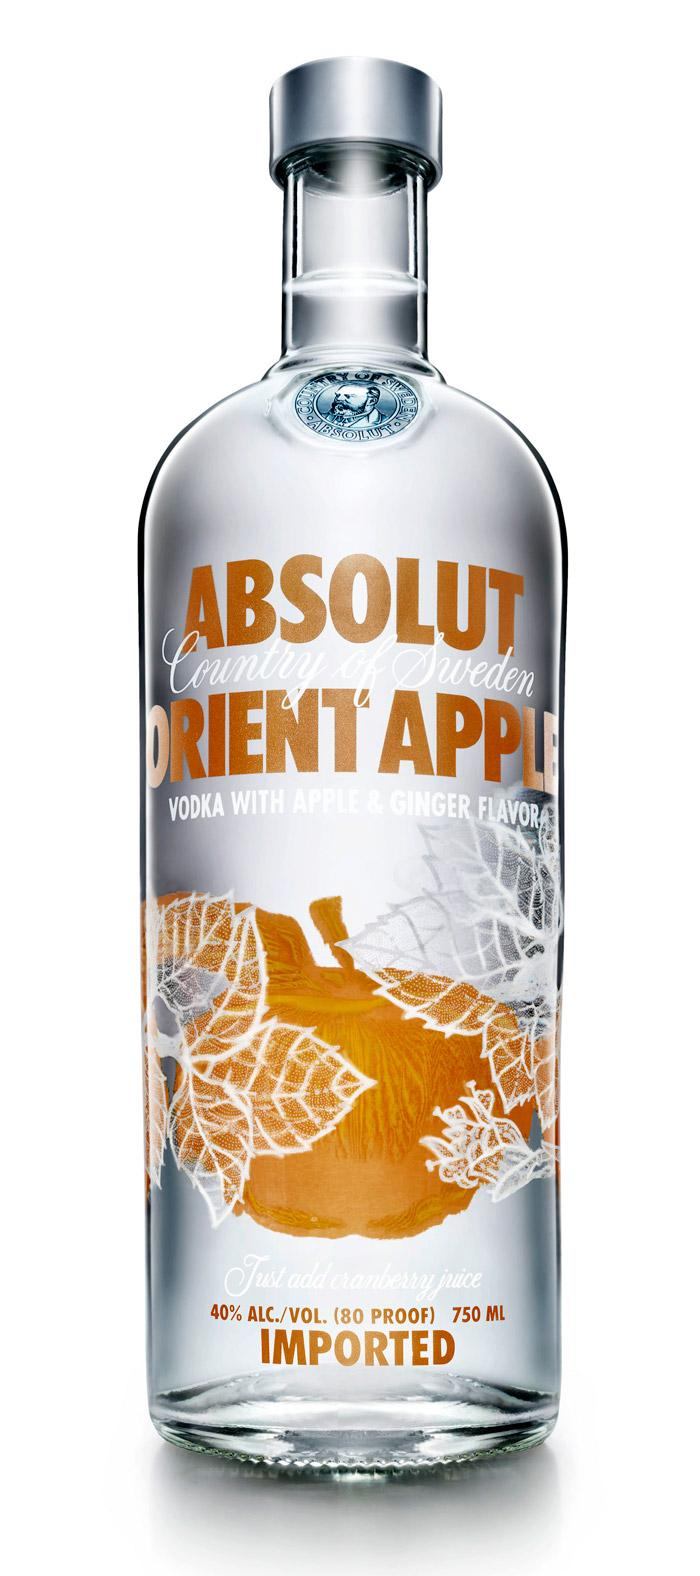 Absolut Orient Apple - The Dieline: The World's #1 Package Design Website -